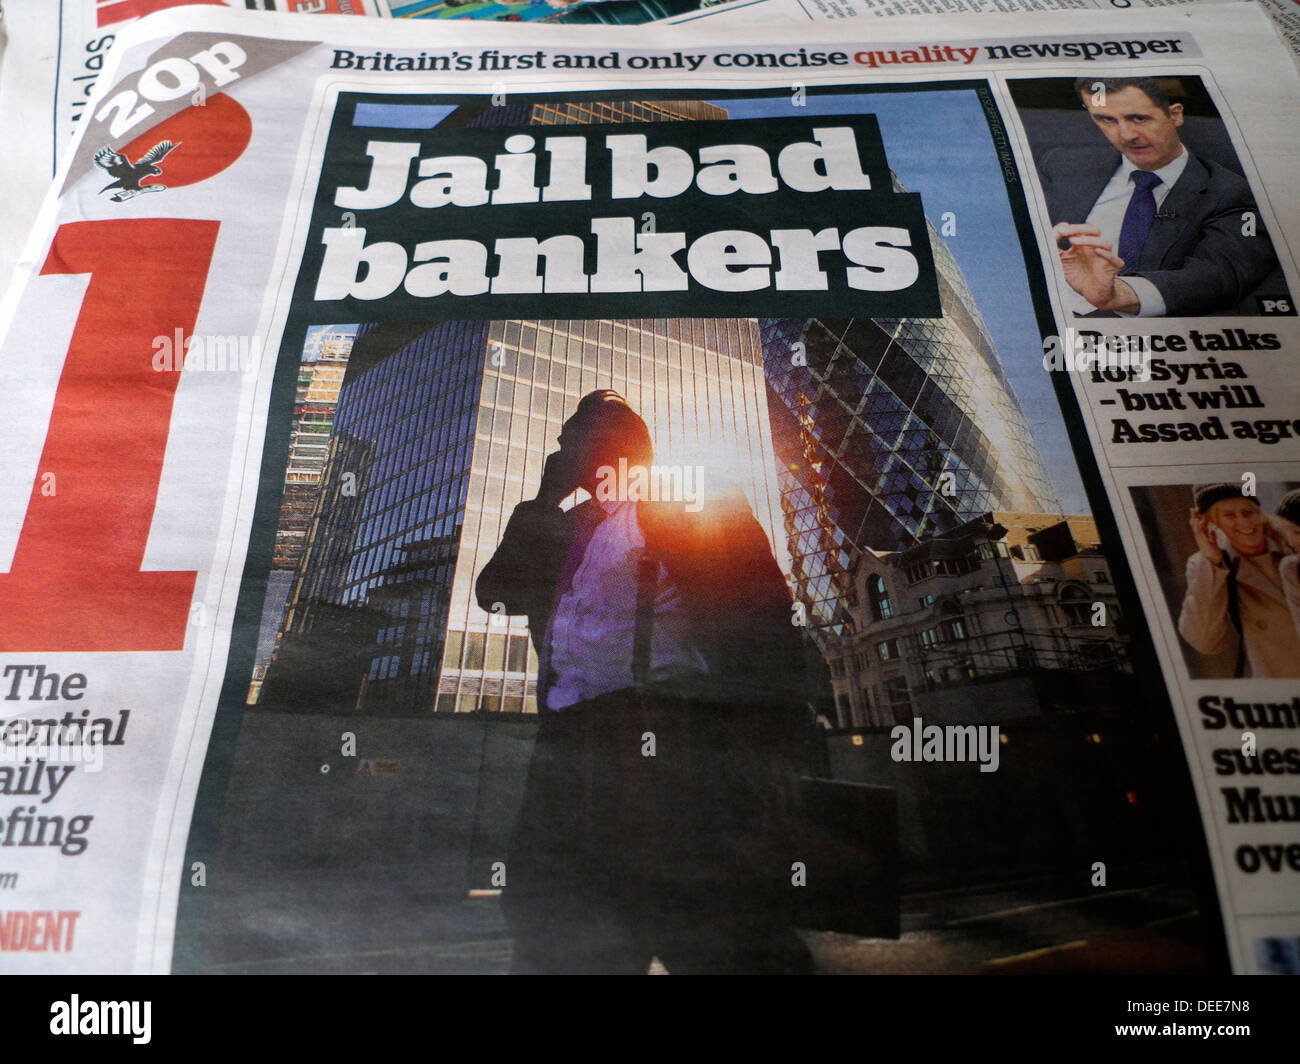 'Jail bad bankers' newspaper headline on front cover of Independent  newspapers London England UK 19 June 2013 - Stock Image